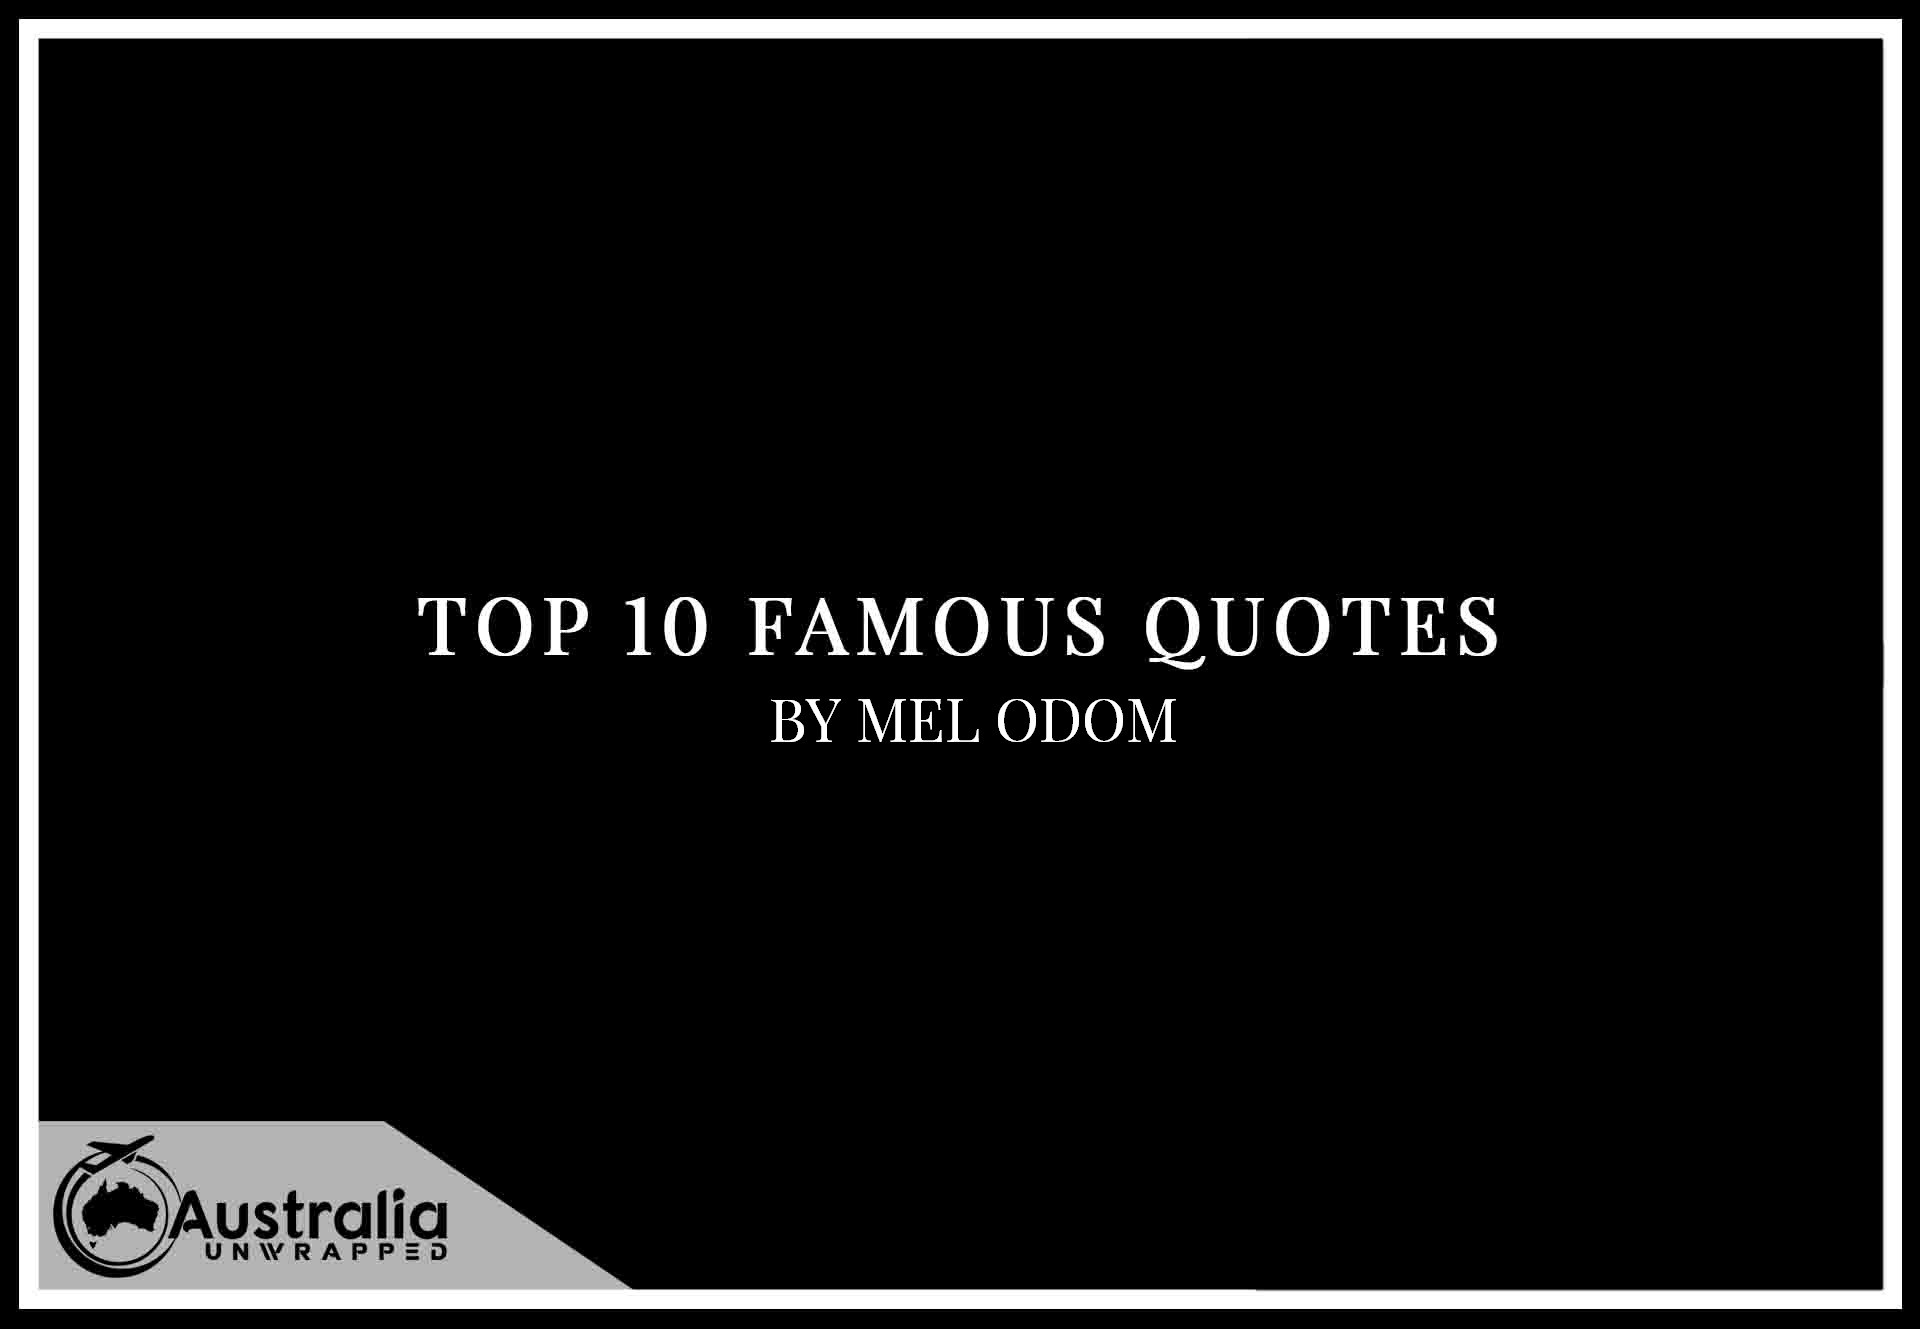 Top 10 Famous Quotes by Author Mel Odom